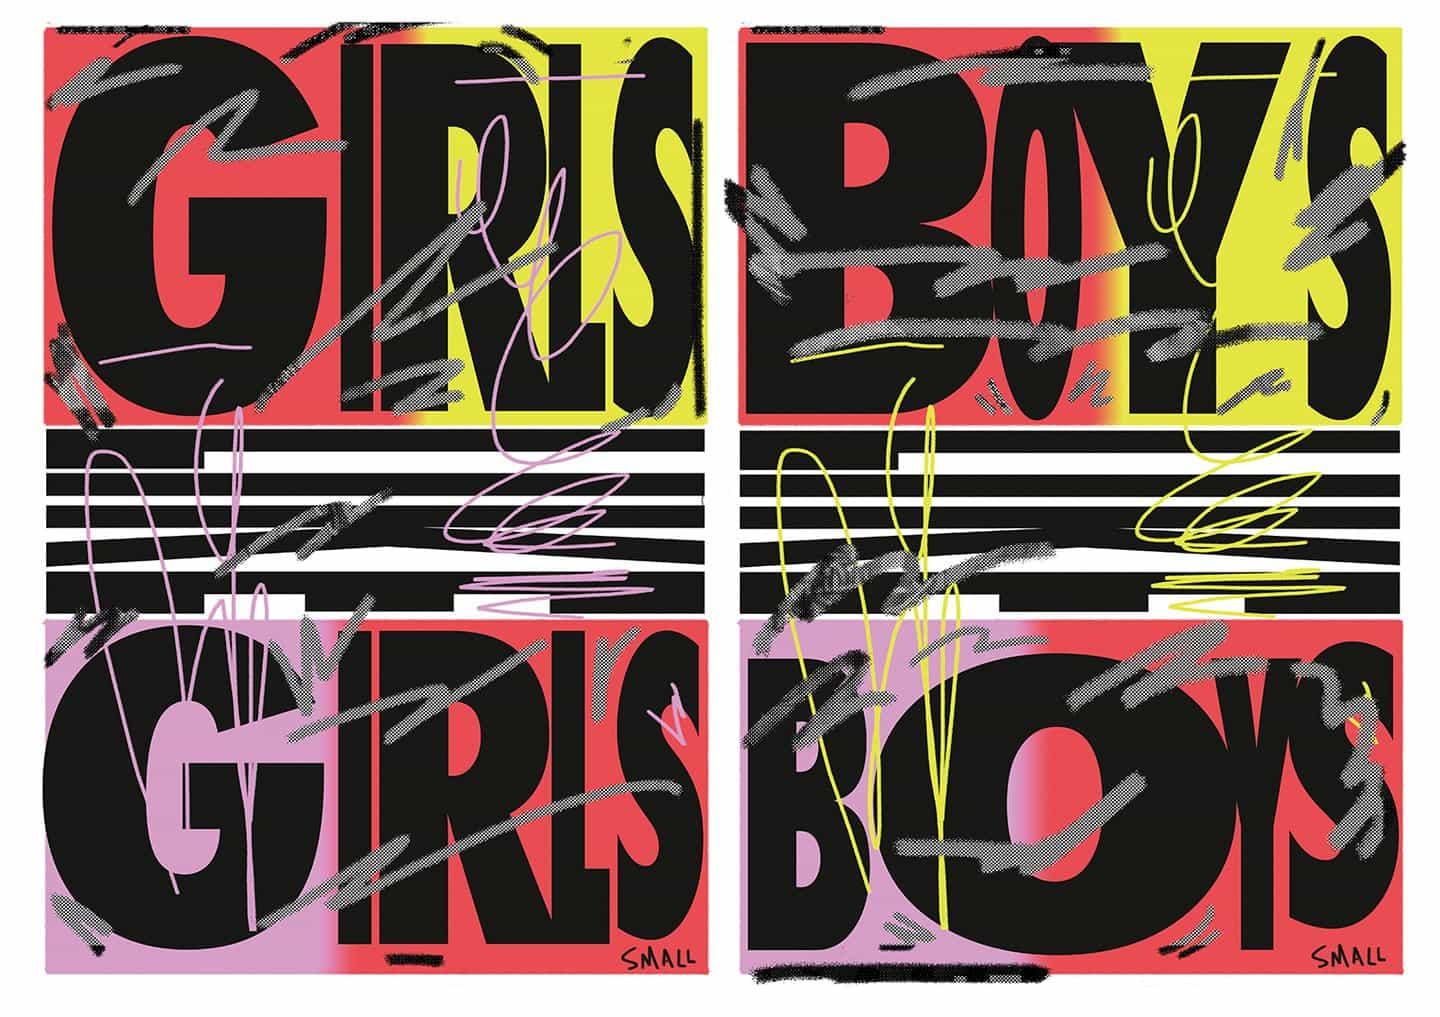 Ejemplos del trabajo de Kris hasta la fecha: Girls Like Girls / Boys Like Boys, 2019 (Copyright © Kris Andrew Small, 2019)